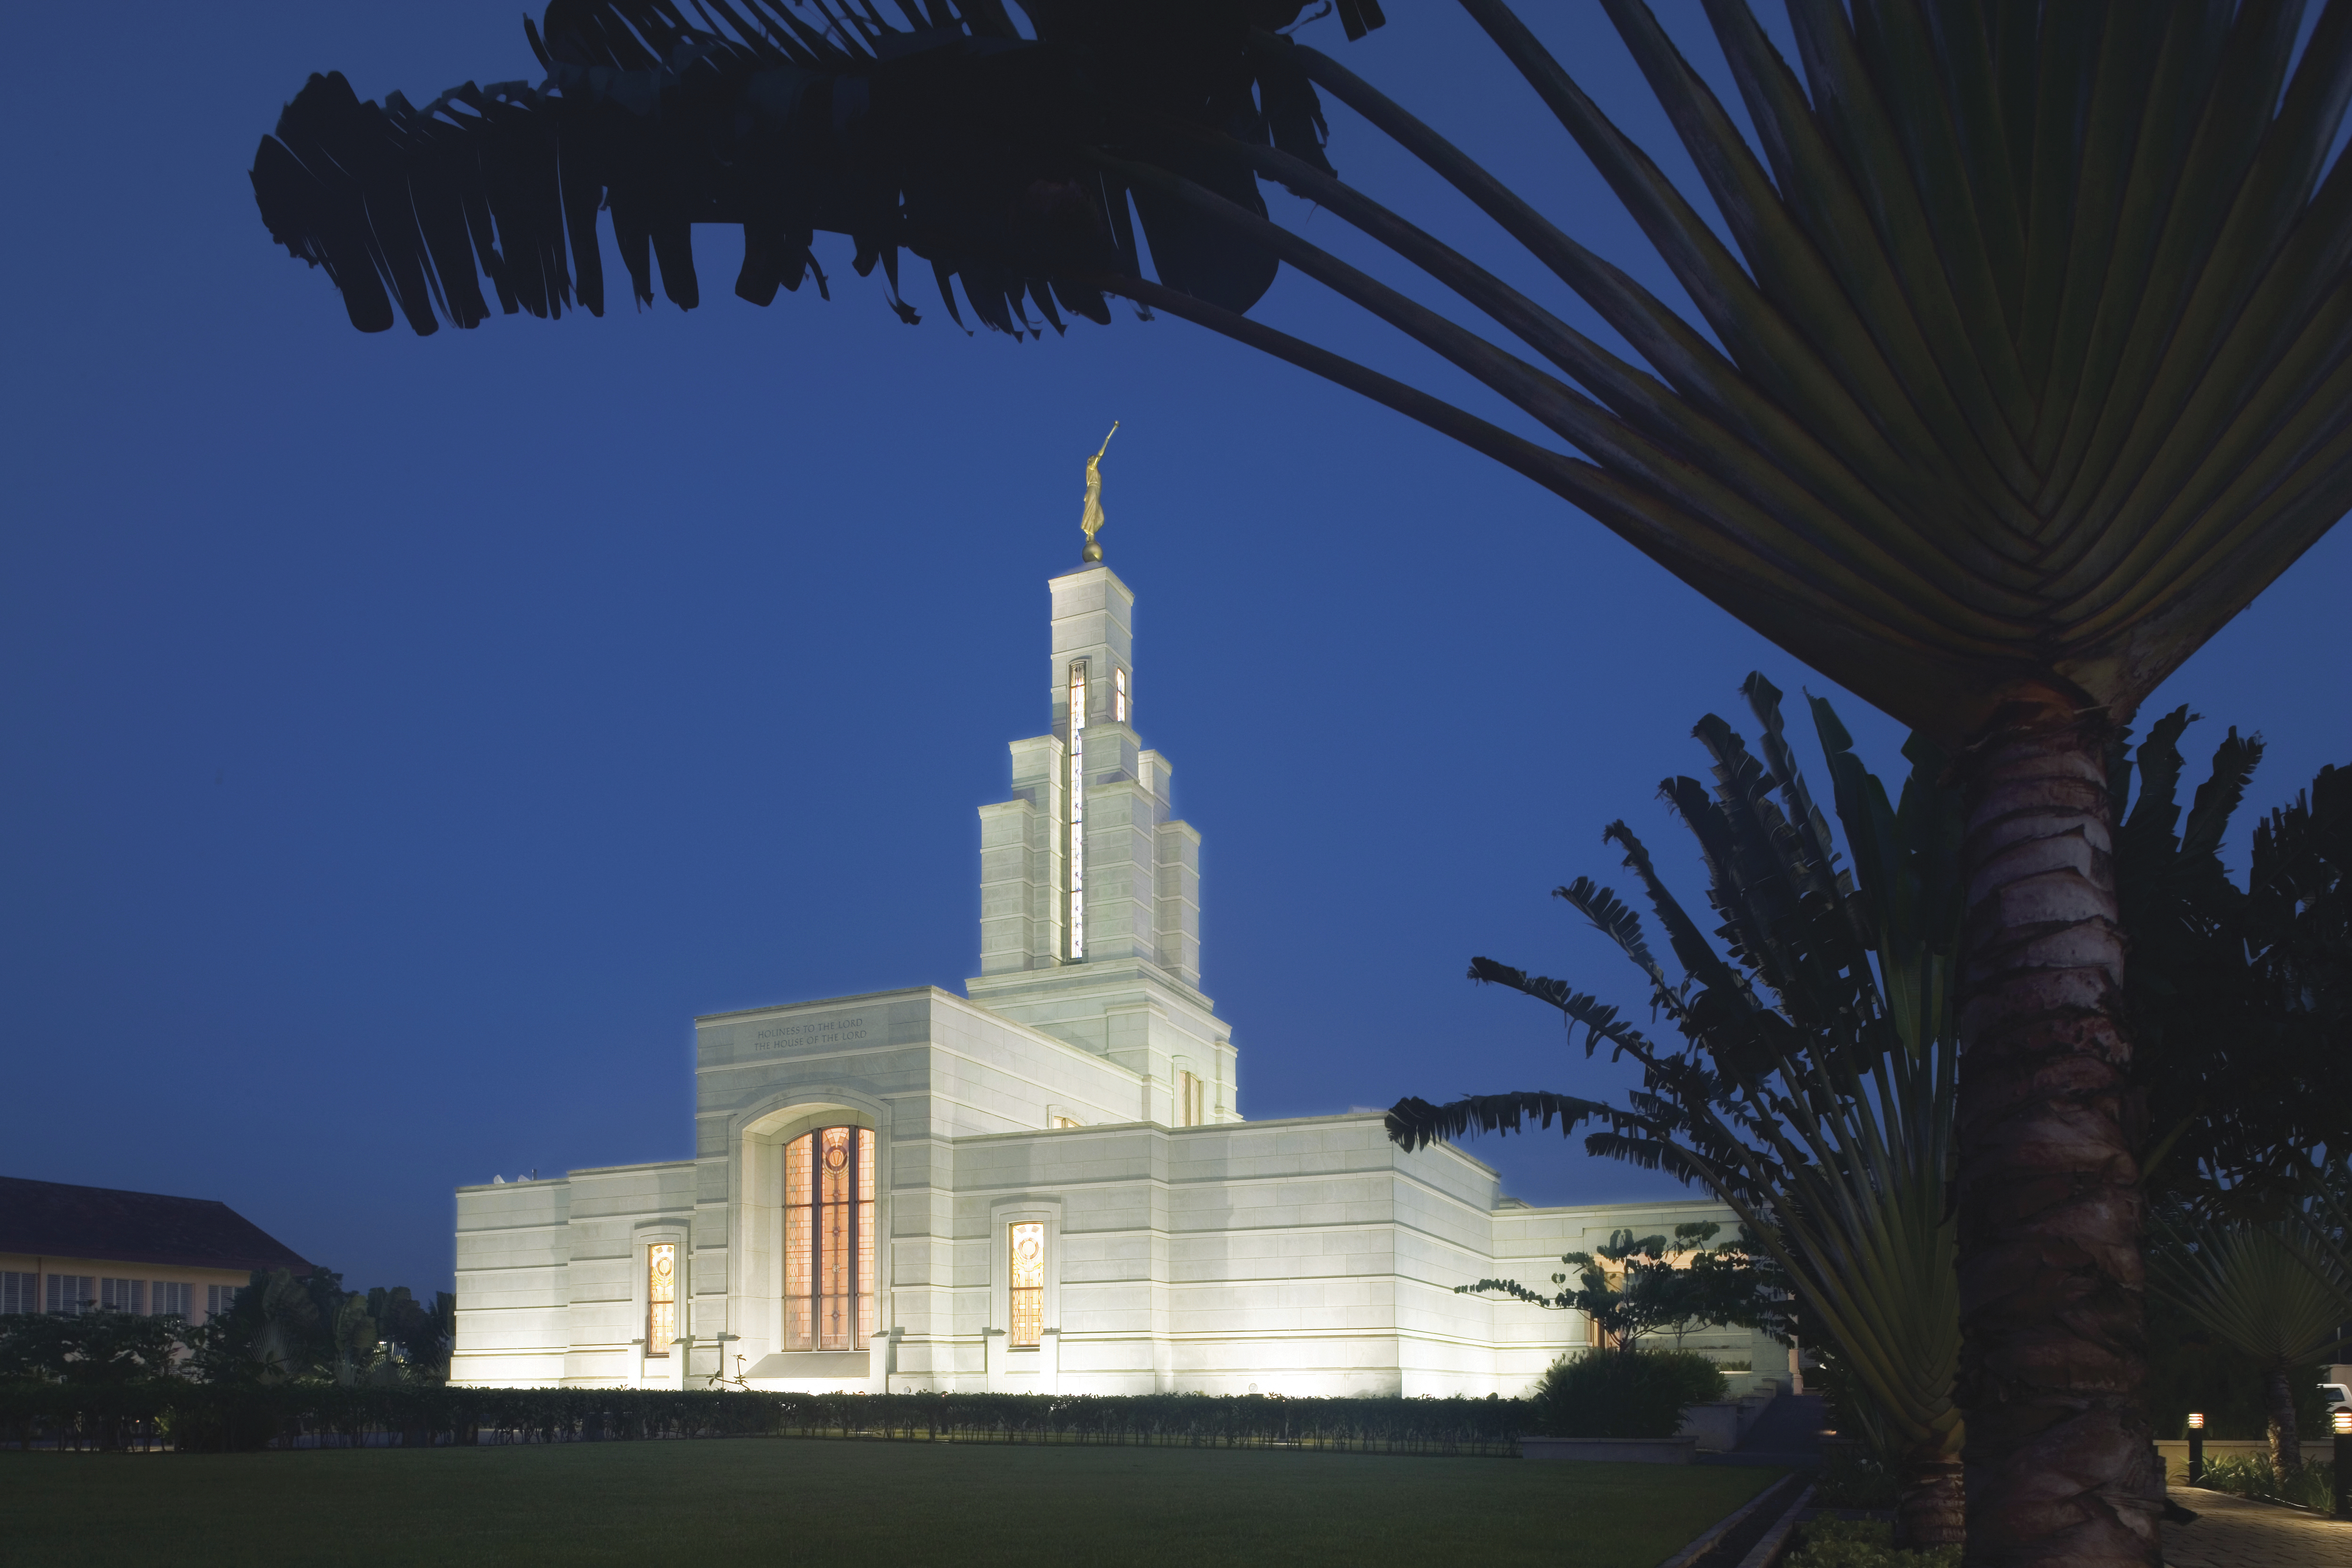 The Accra Ghana Temple is lit up at night.